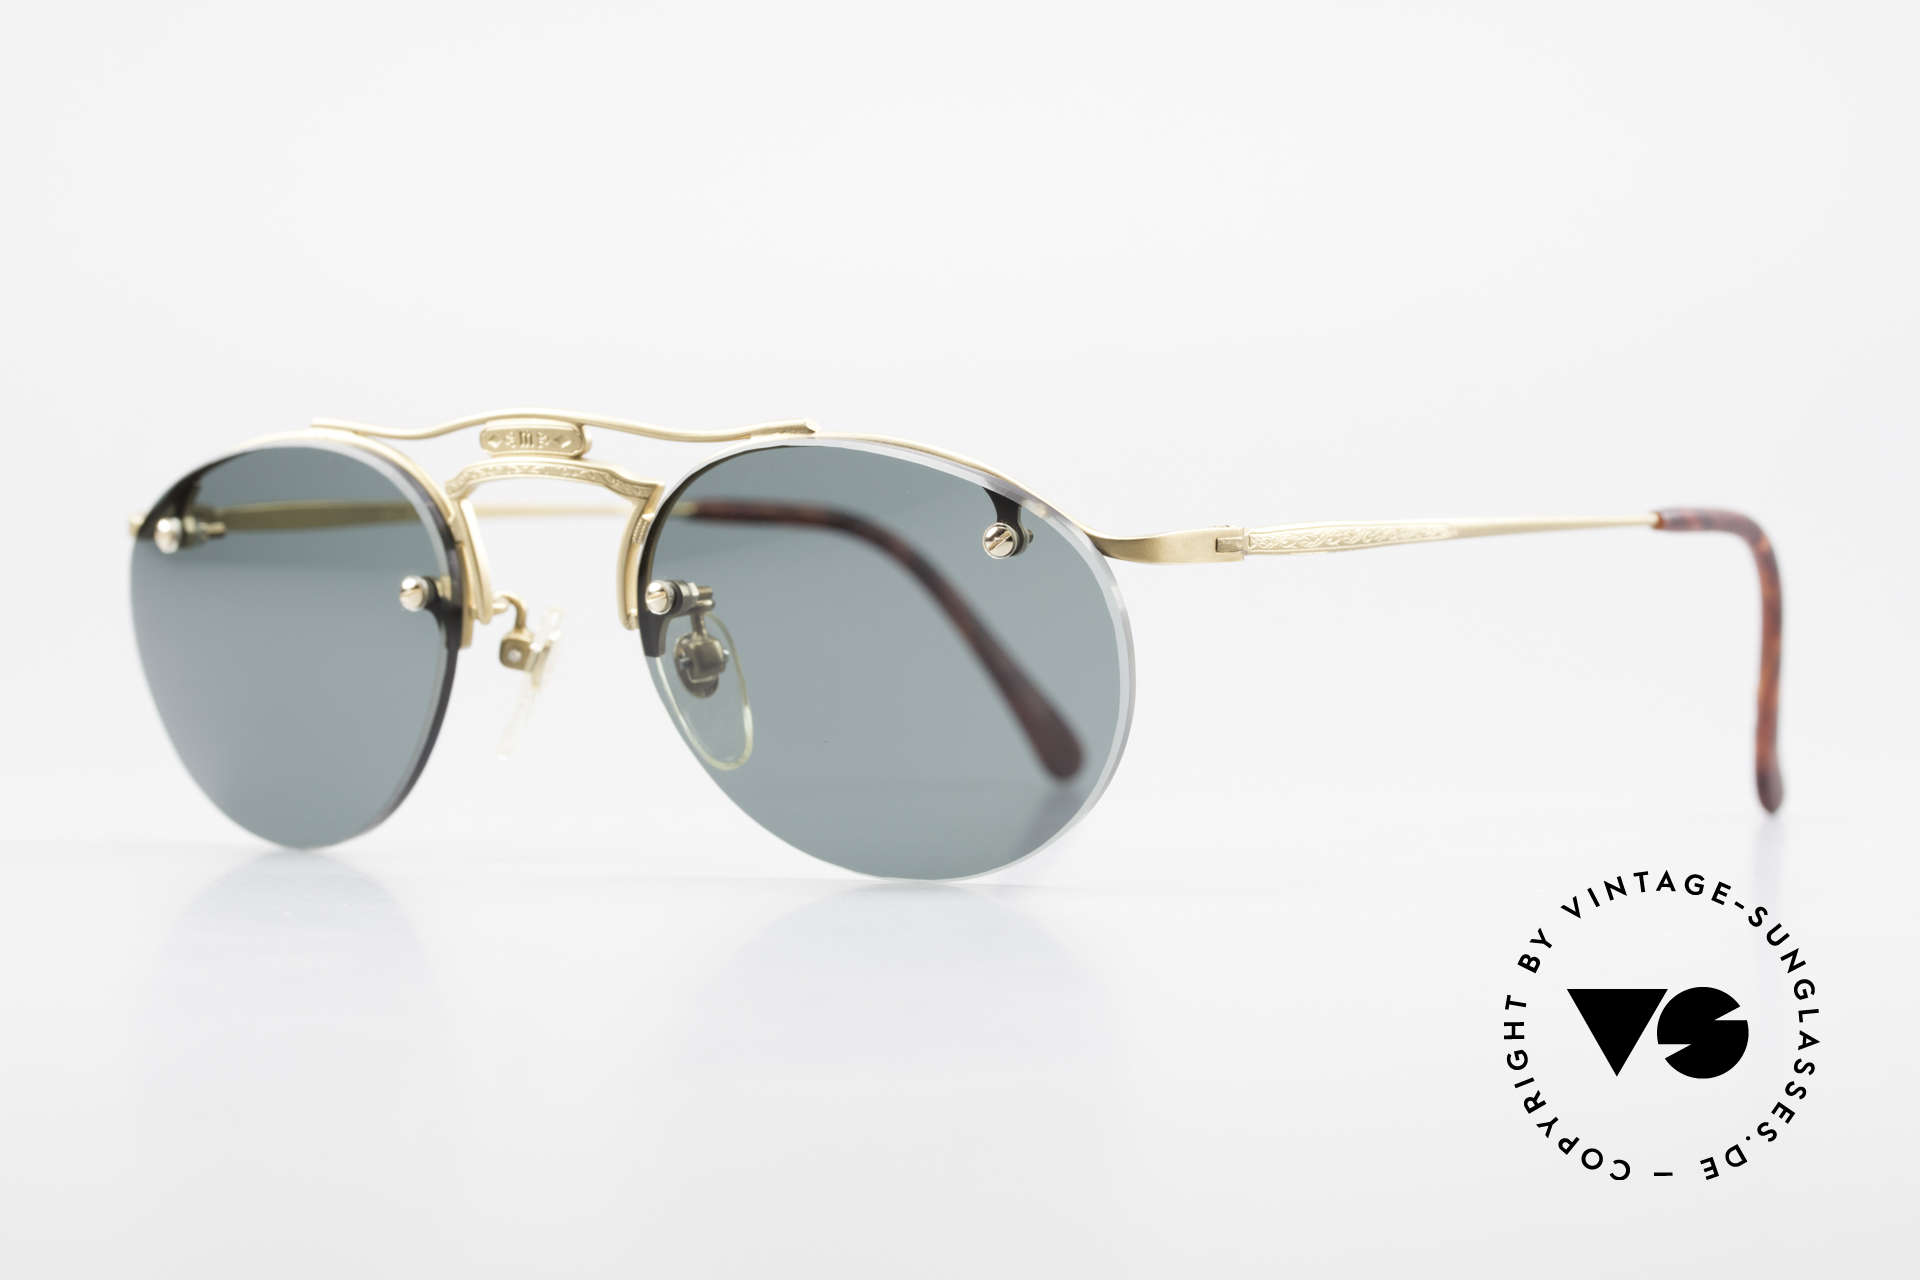 Matsuda 2823 Small Aviator Style Shades, model represents lifestyle & quality awareness, similarly, Made for Men and Women